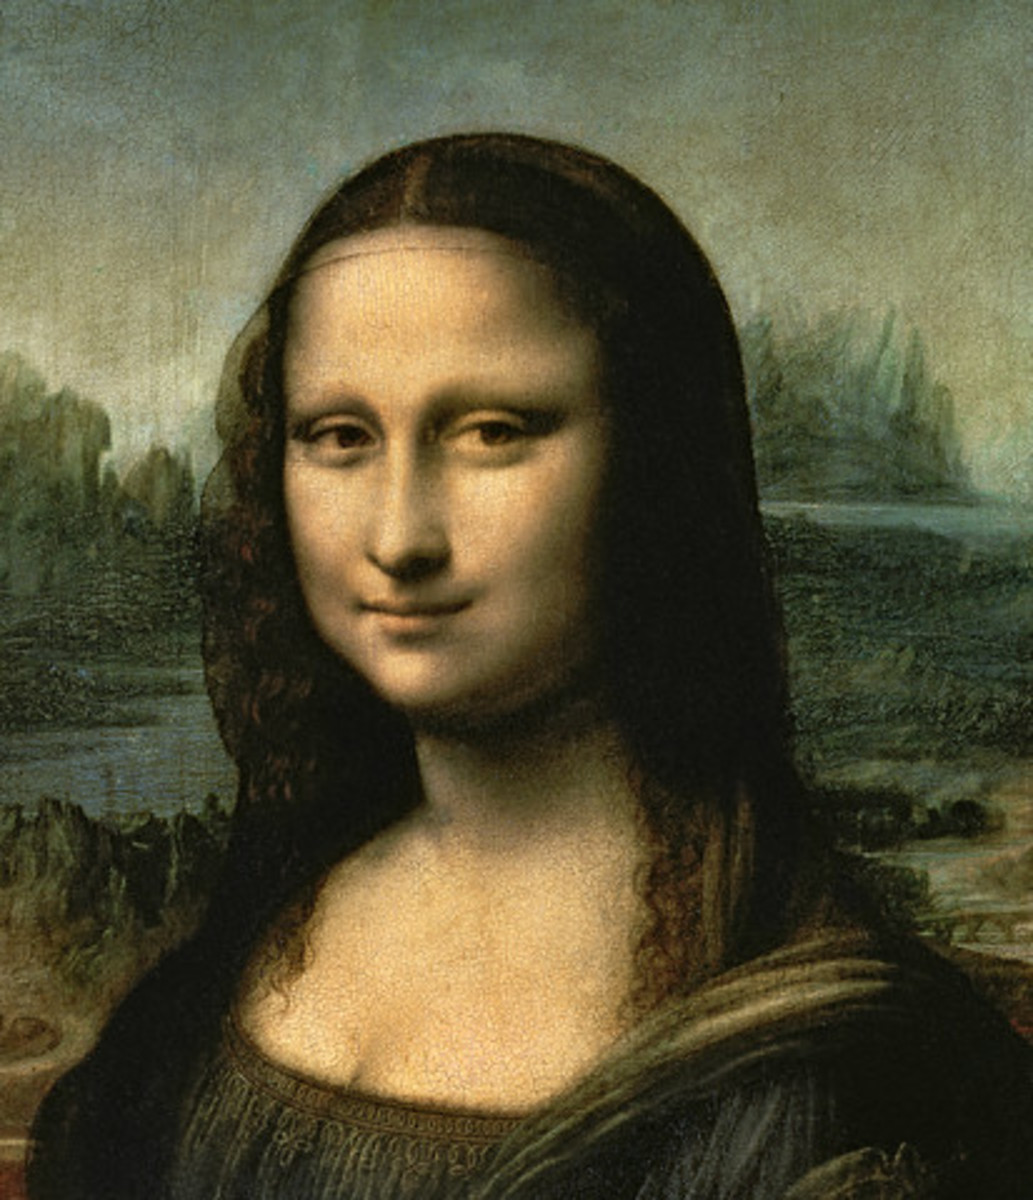 Fig. 4. Is beauty hidden in the numbers? Detail of Mona Lisa.